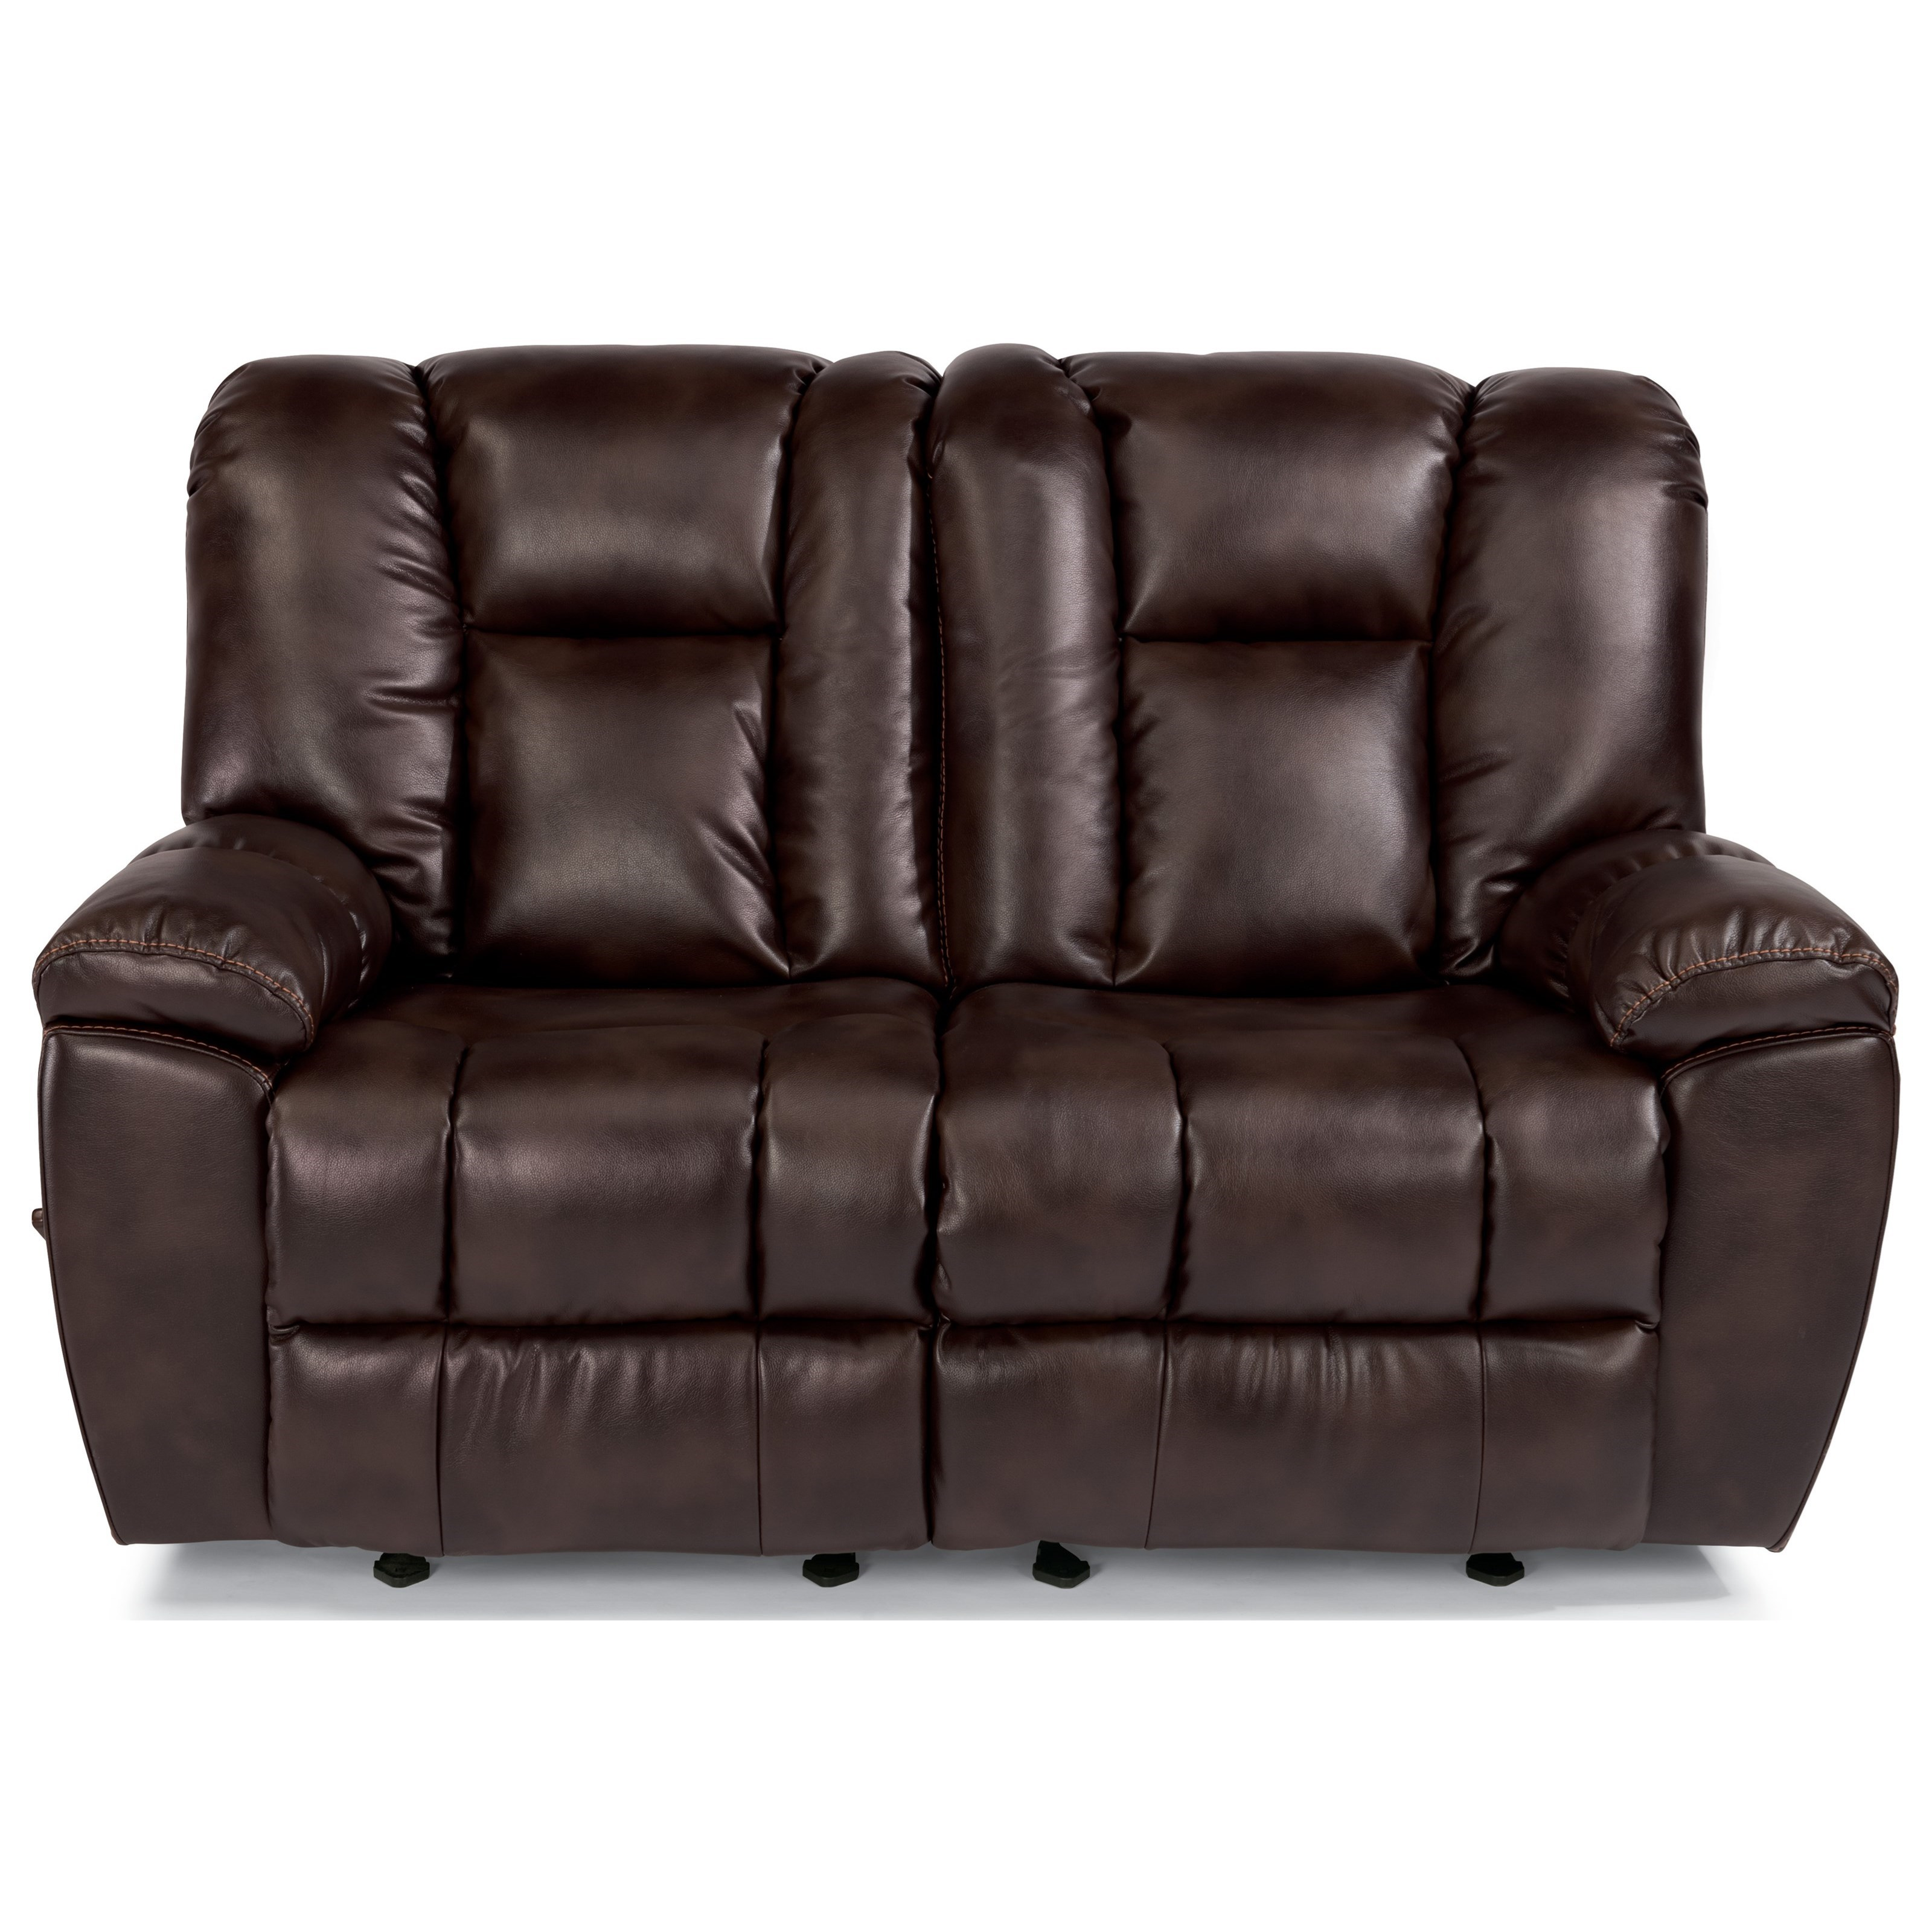 Flexsteel Latitudes-La Crosse Gliding Reclining Love Seat - Item Number: 1638-60